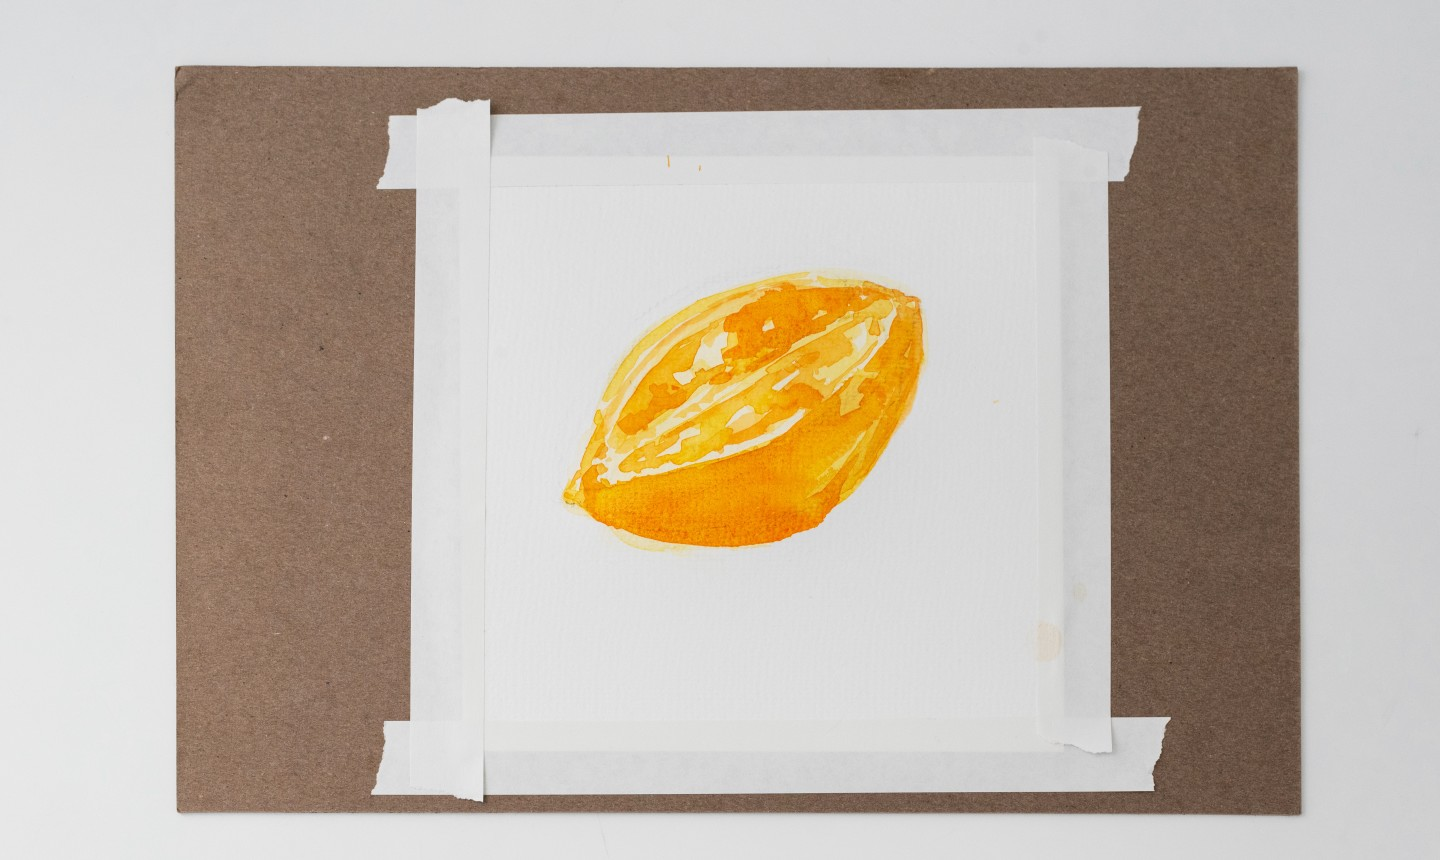 Painted yellow fruit